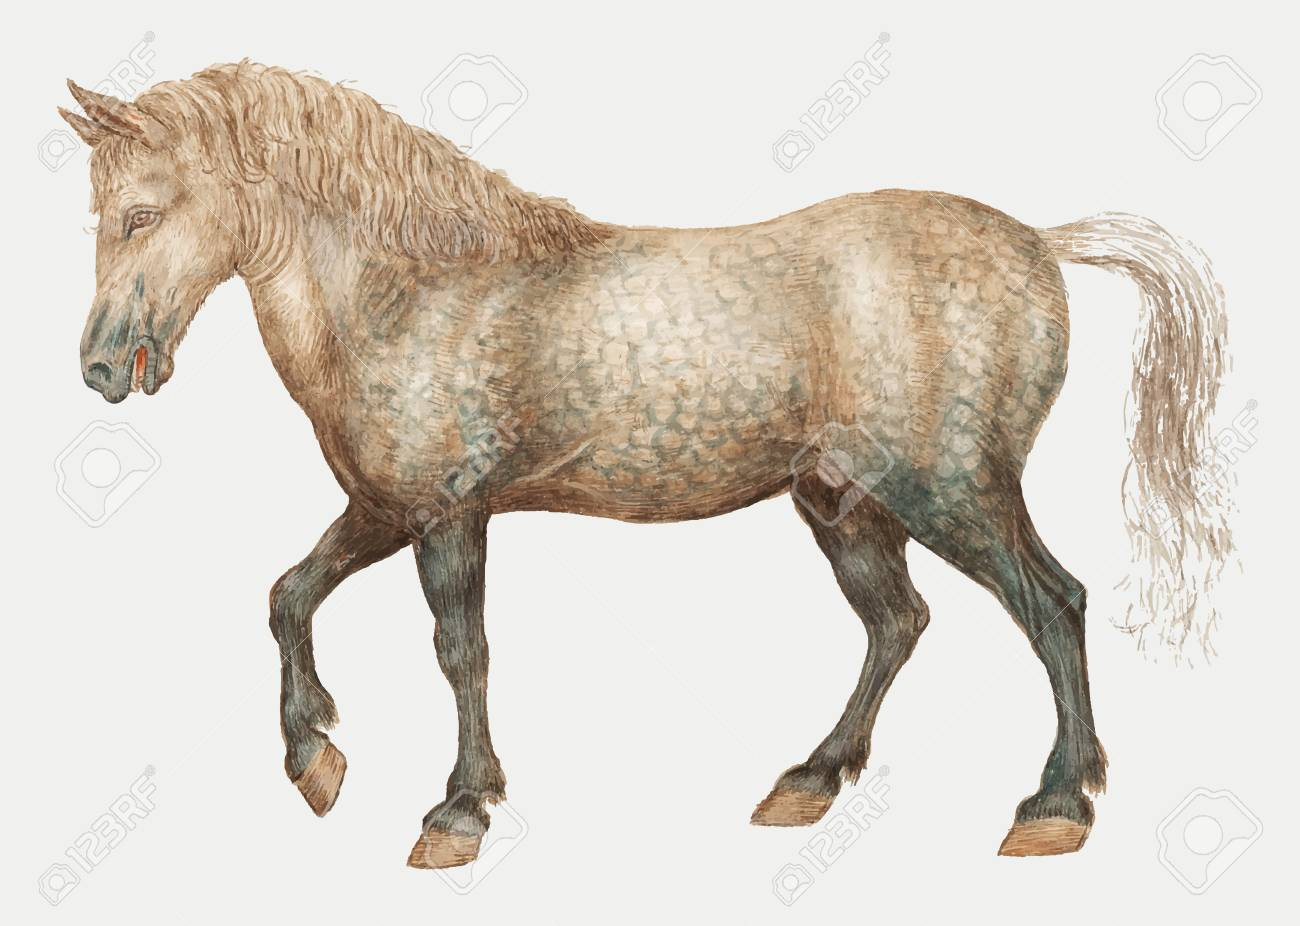 Vintage Horse Illustration In Vector Royalty Free Cliparts Vectors And Stock Illustration Image 115859259